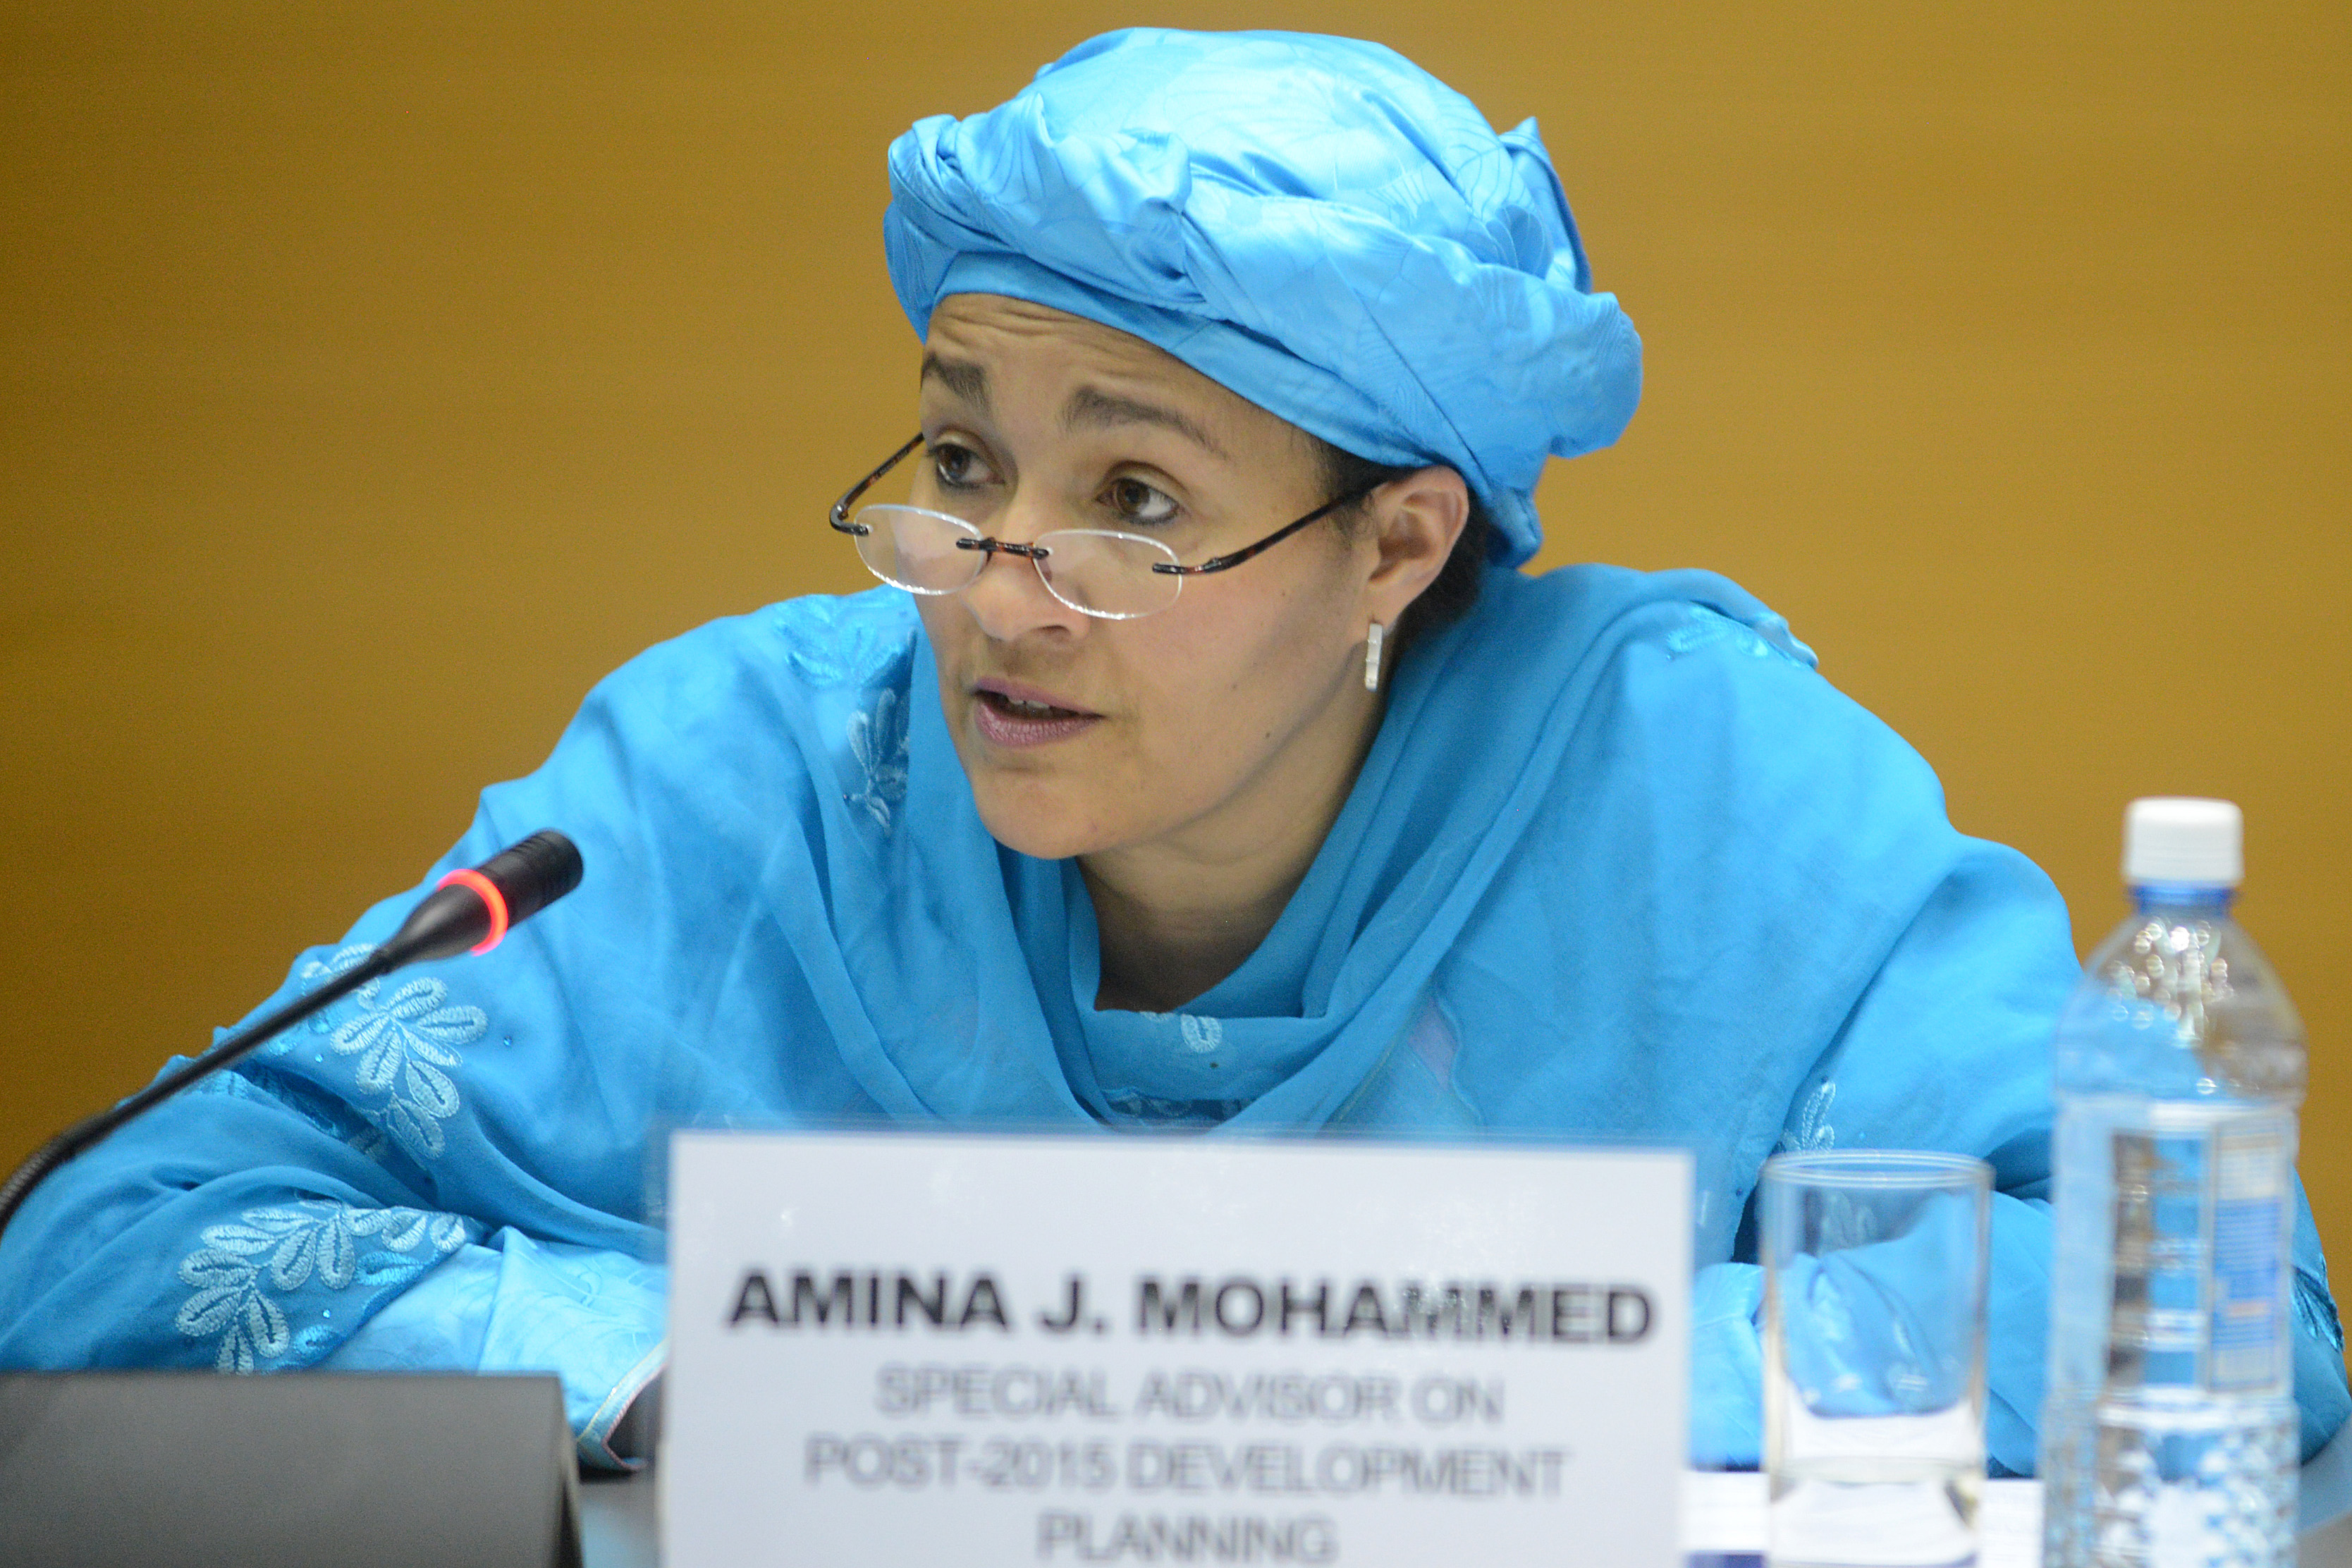 Mohammed Pledges Un Support To Nigeria's Fight Against Corruption, Insecurity